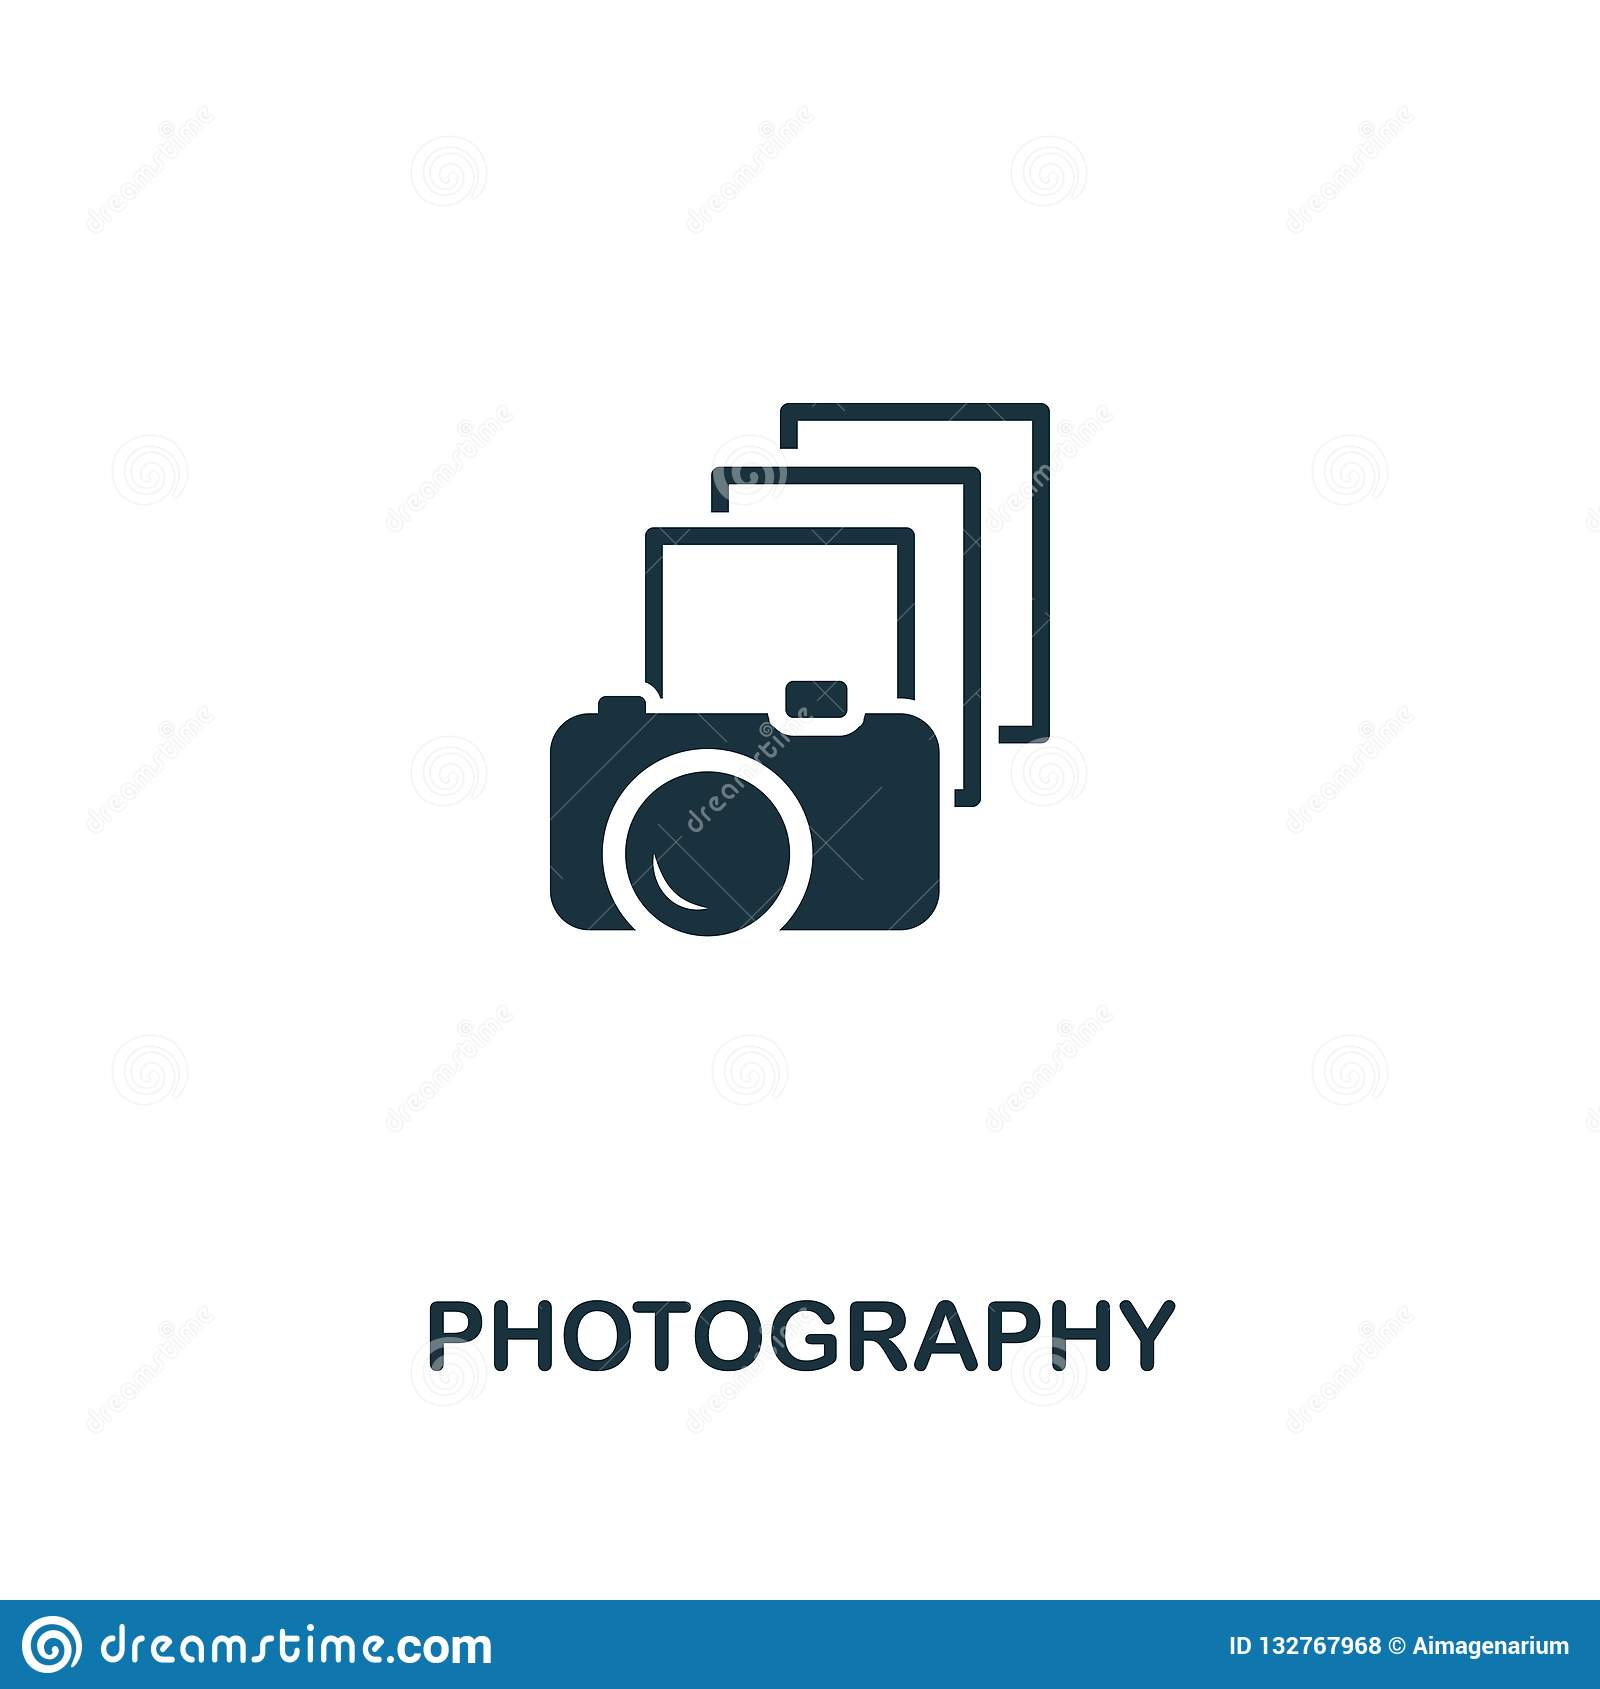 Photography Icon Premium Style Design From Design Ui And Ux Icon Collection Pixel Perfect Photography Icon For Web Design Apps Stock Illustration Illustration Of Photographer Image 132767968